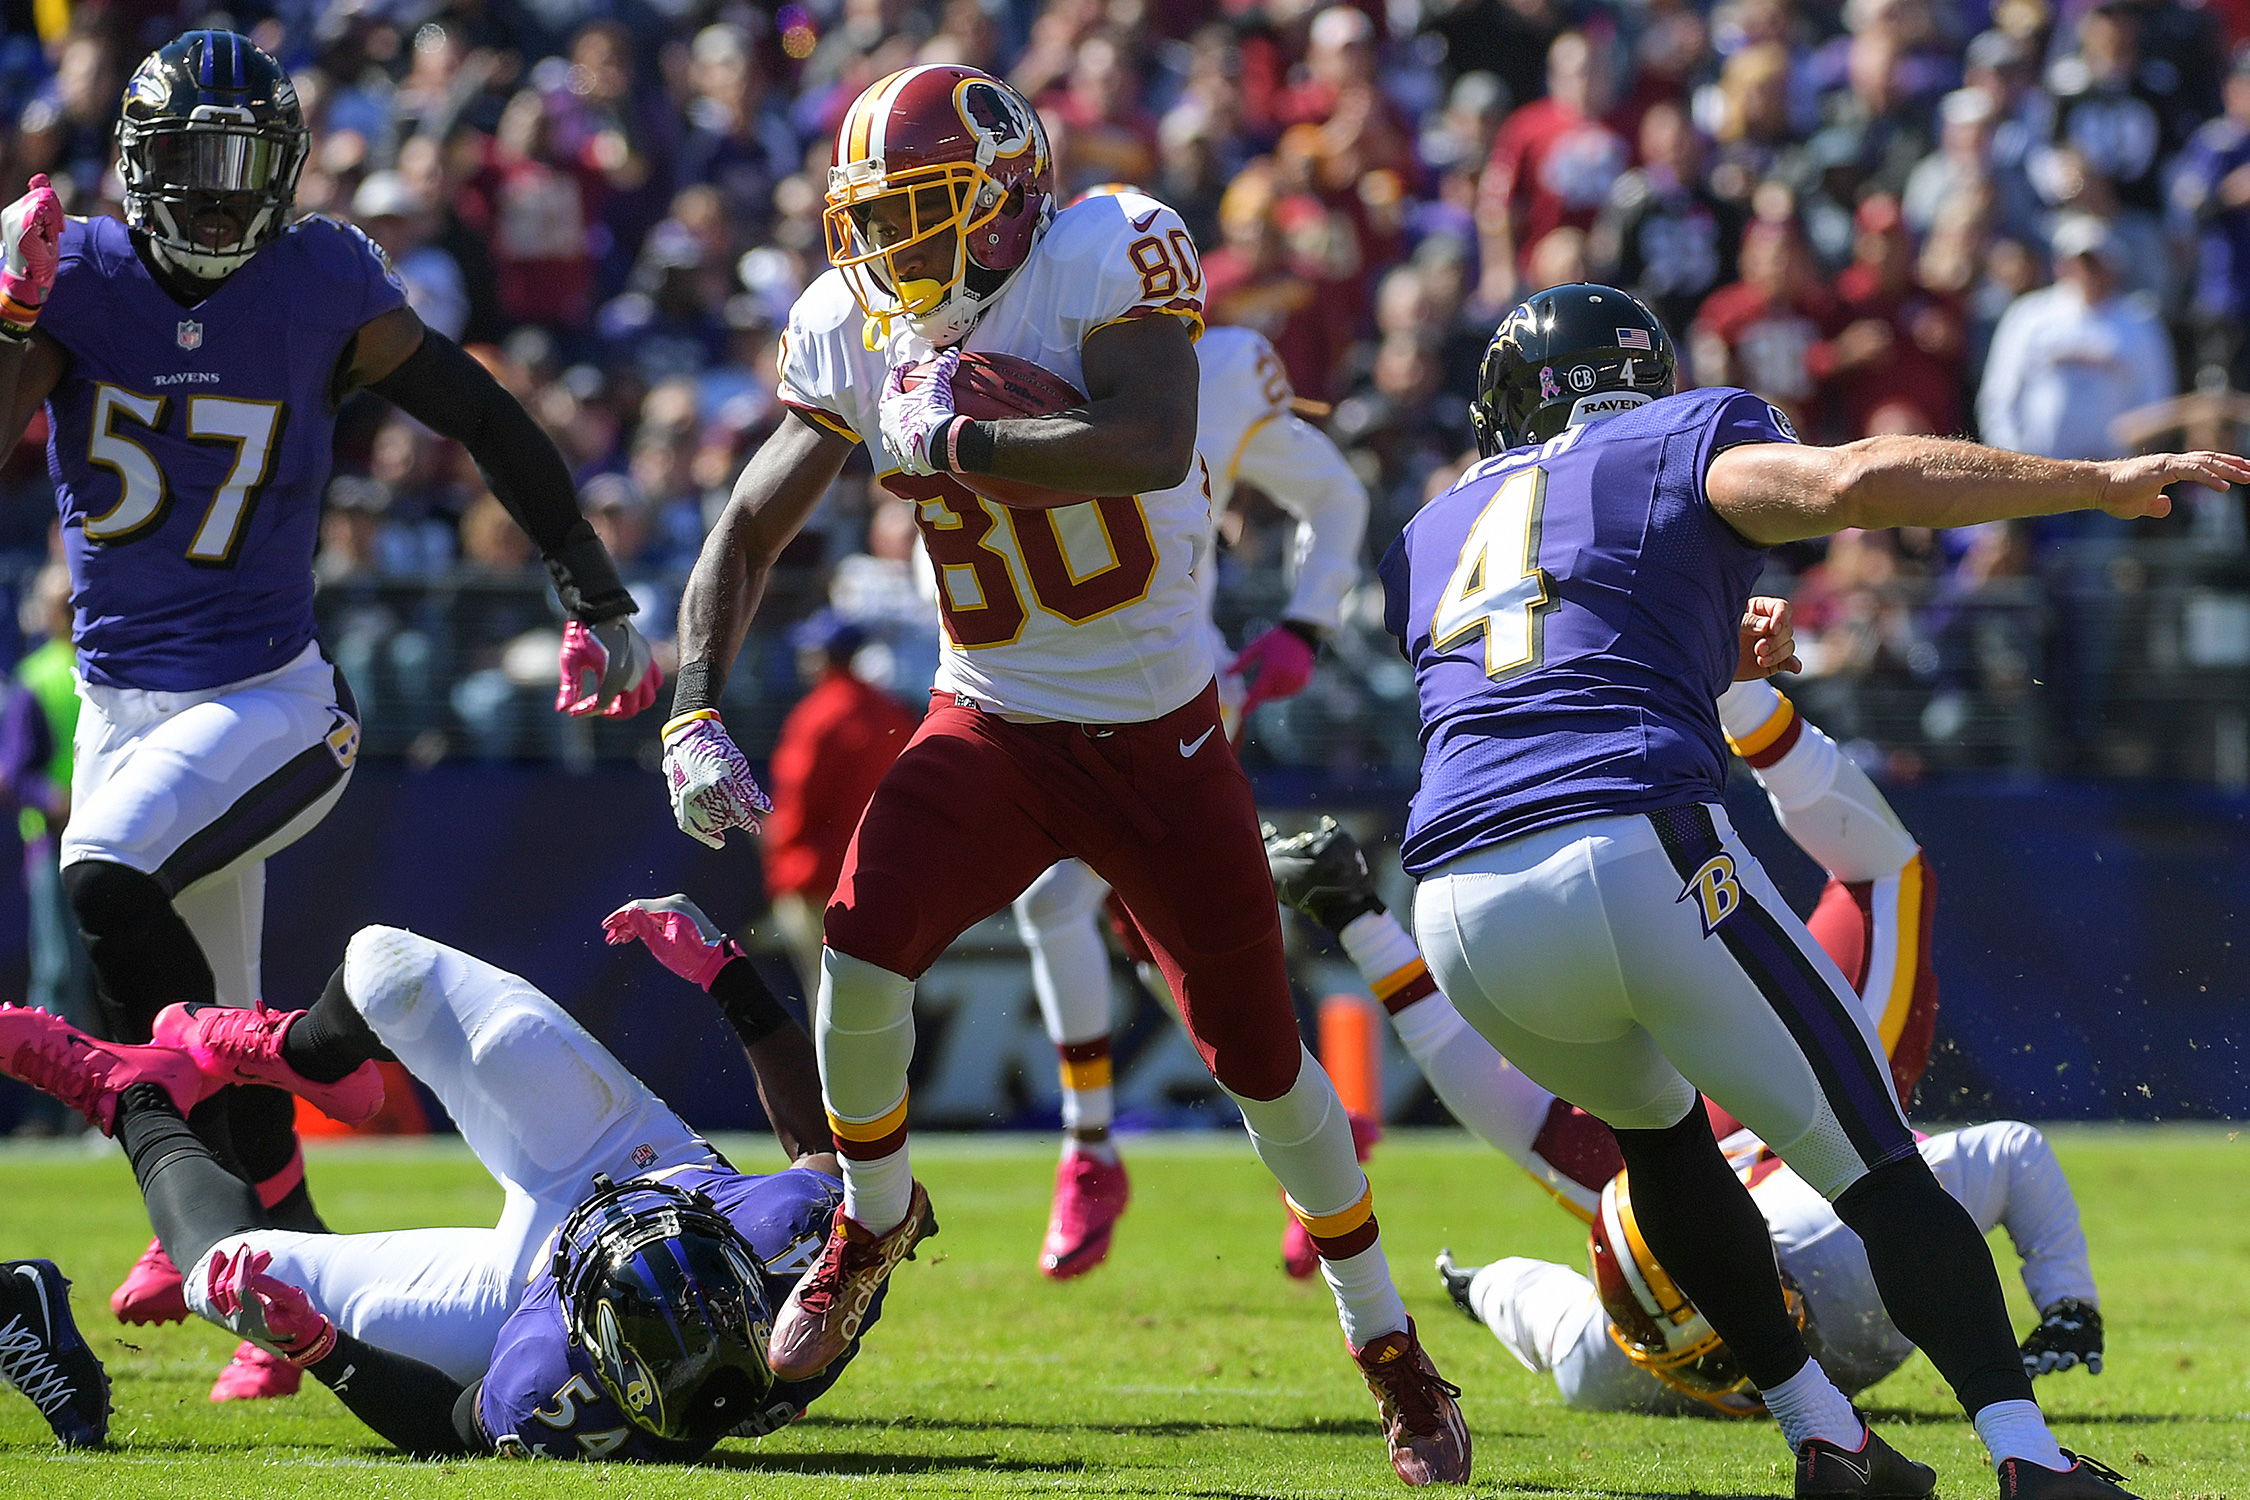 Crowder has been an impressive weapon for the Redskins all season, but he probably cemented his place on this list in Week 5, when he returned a punt 85 yards for a touchdown early in a win over the Ravens.